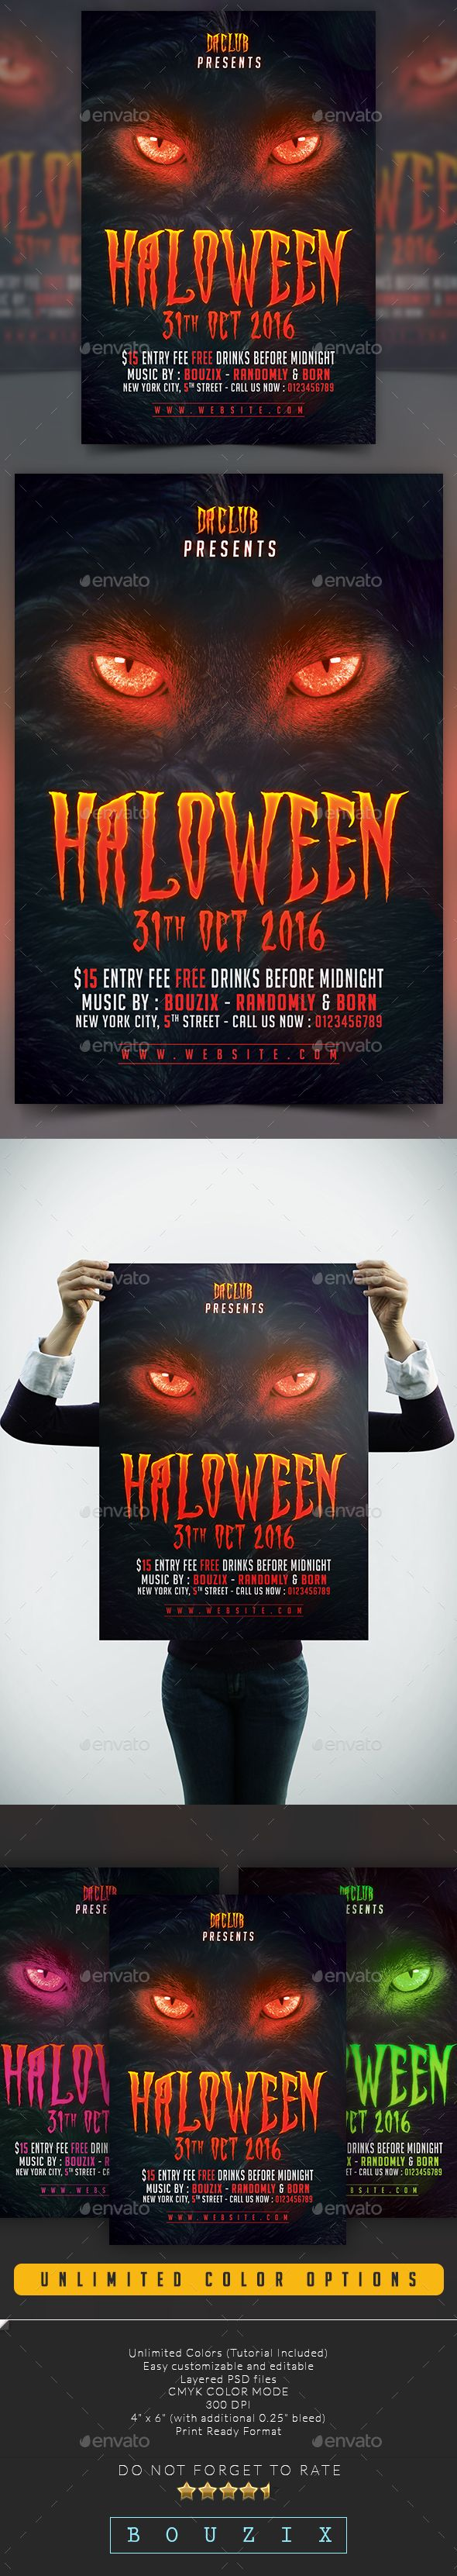 Free Halloween Flyer Templates Photoshop Kubreforic